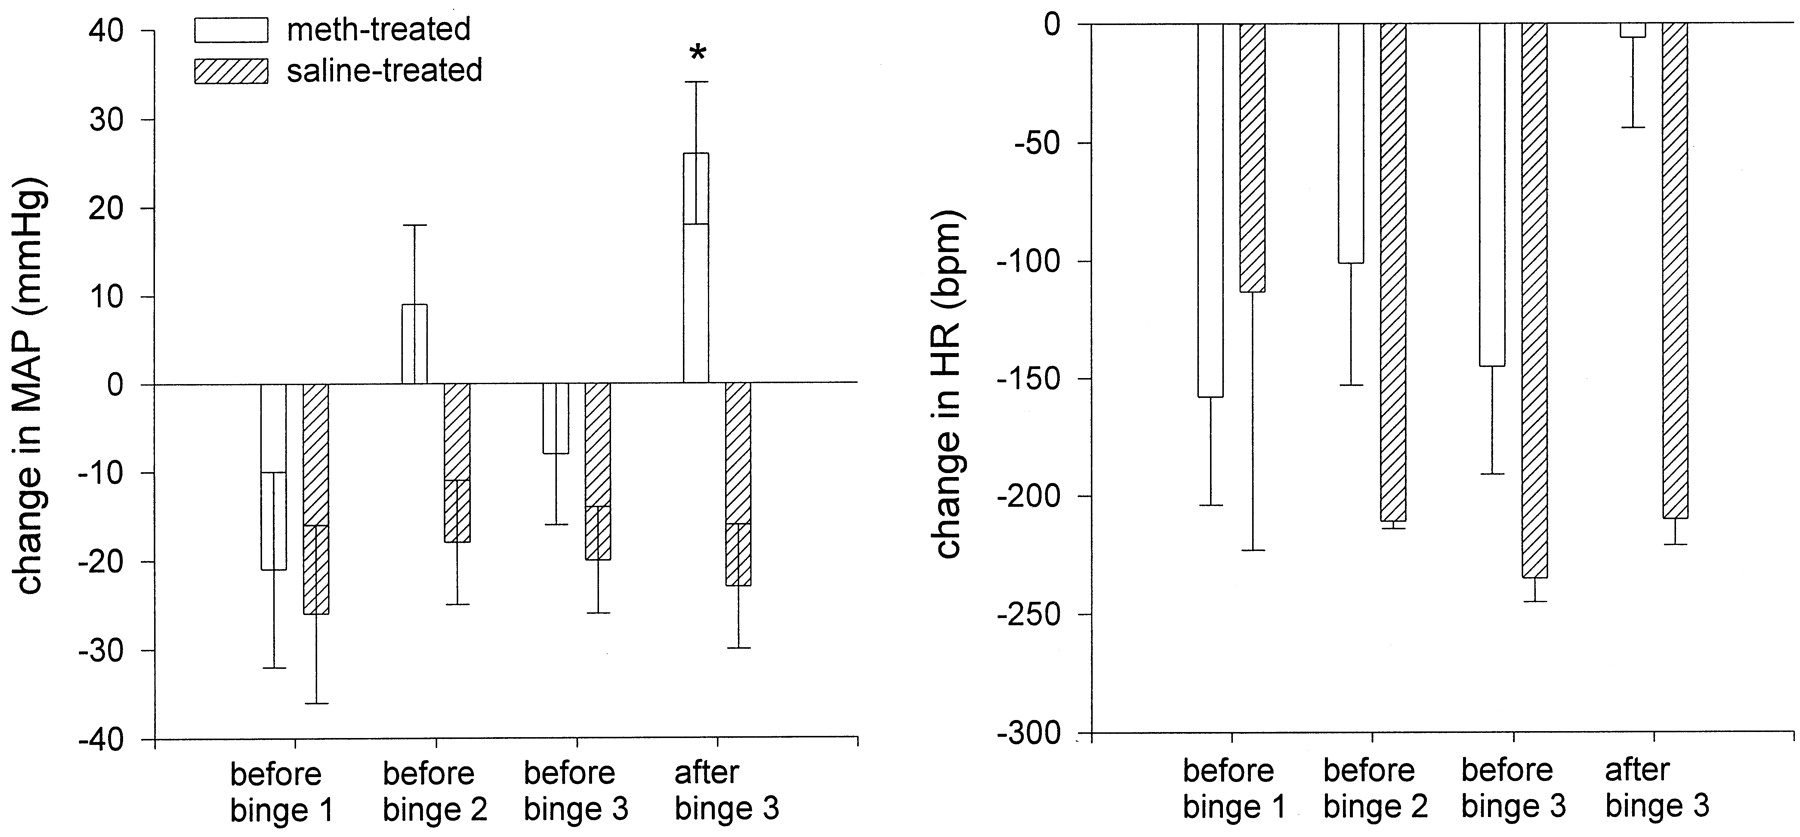 """Cardiovascular Responses Elicited by the """"Binge"""